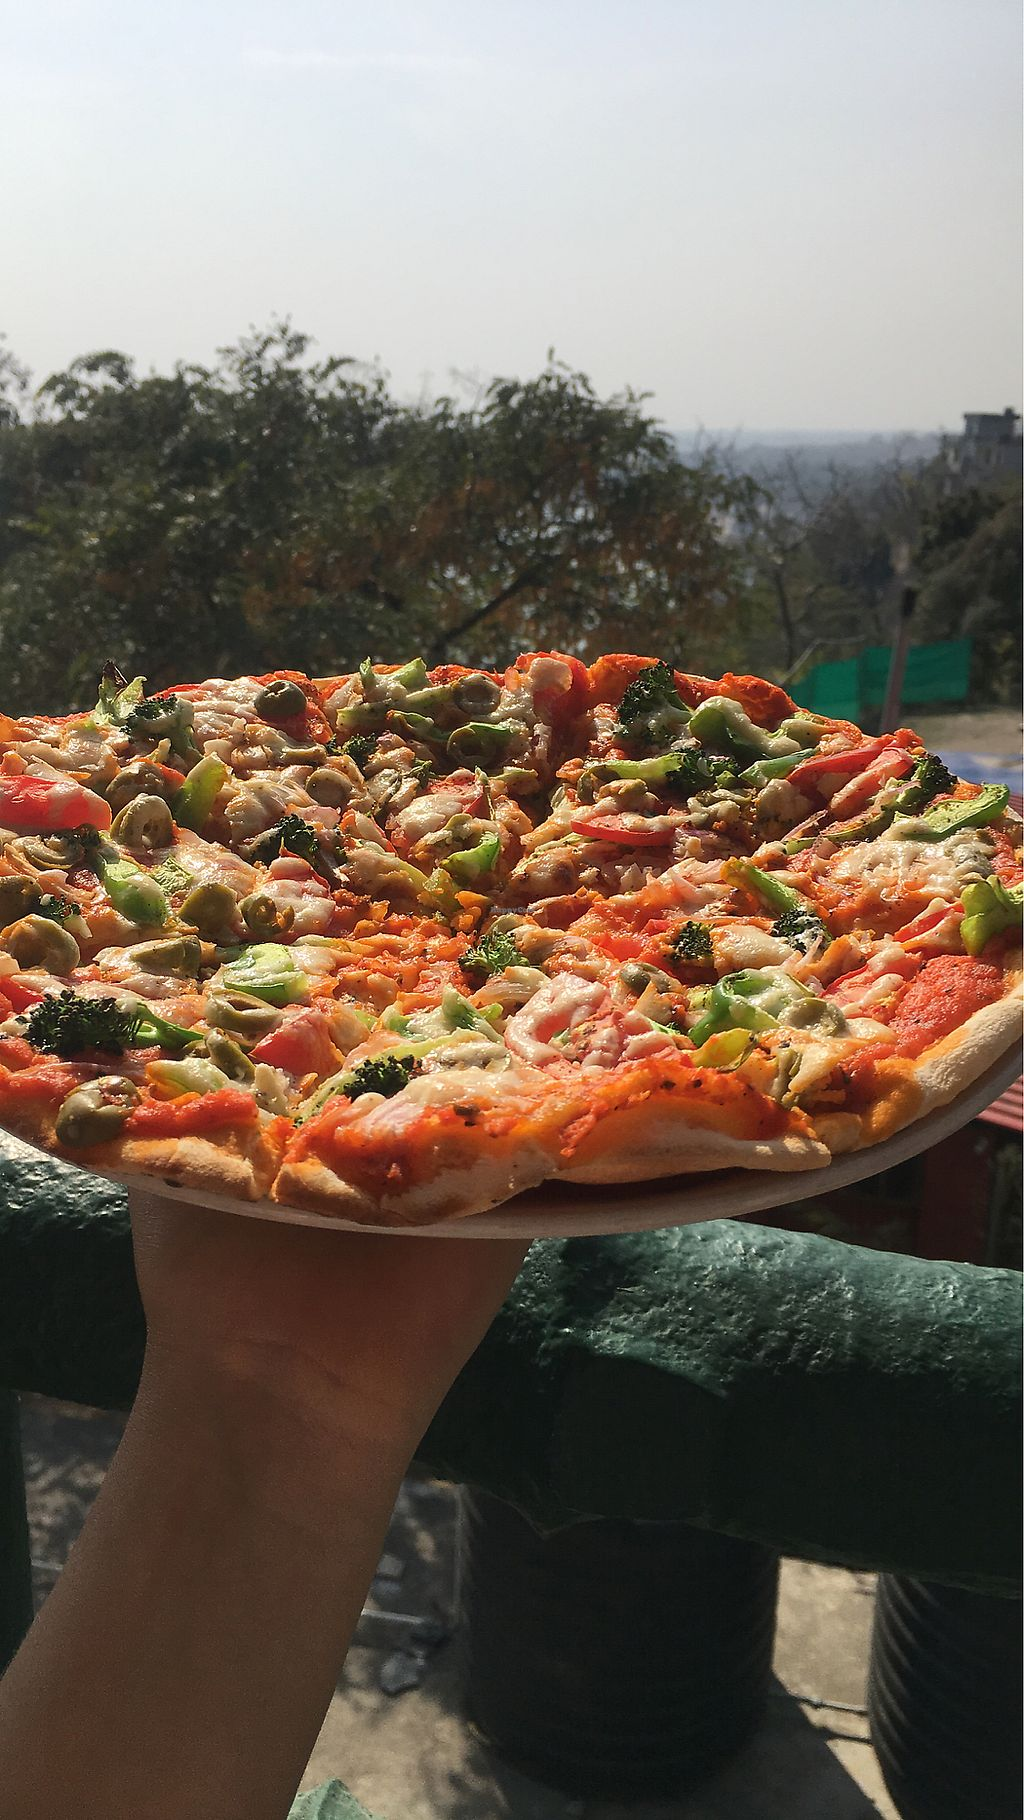 "Photo of TATTV Cafe  by <a href=""/members/profile/MariBo"">MariBo</a> <br/>Vegan pizza <br/> February 26, 2018  - <a href='/contact/abuse/image/81822/364129'>Report</a>"